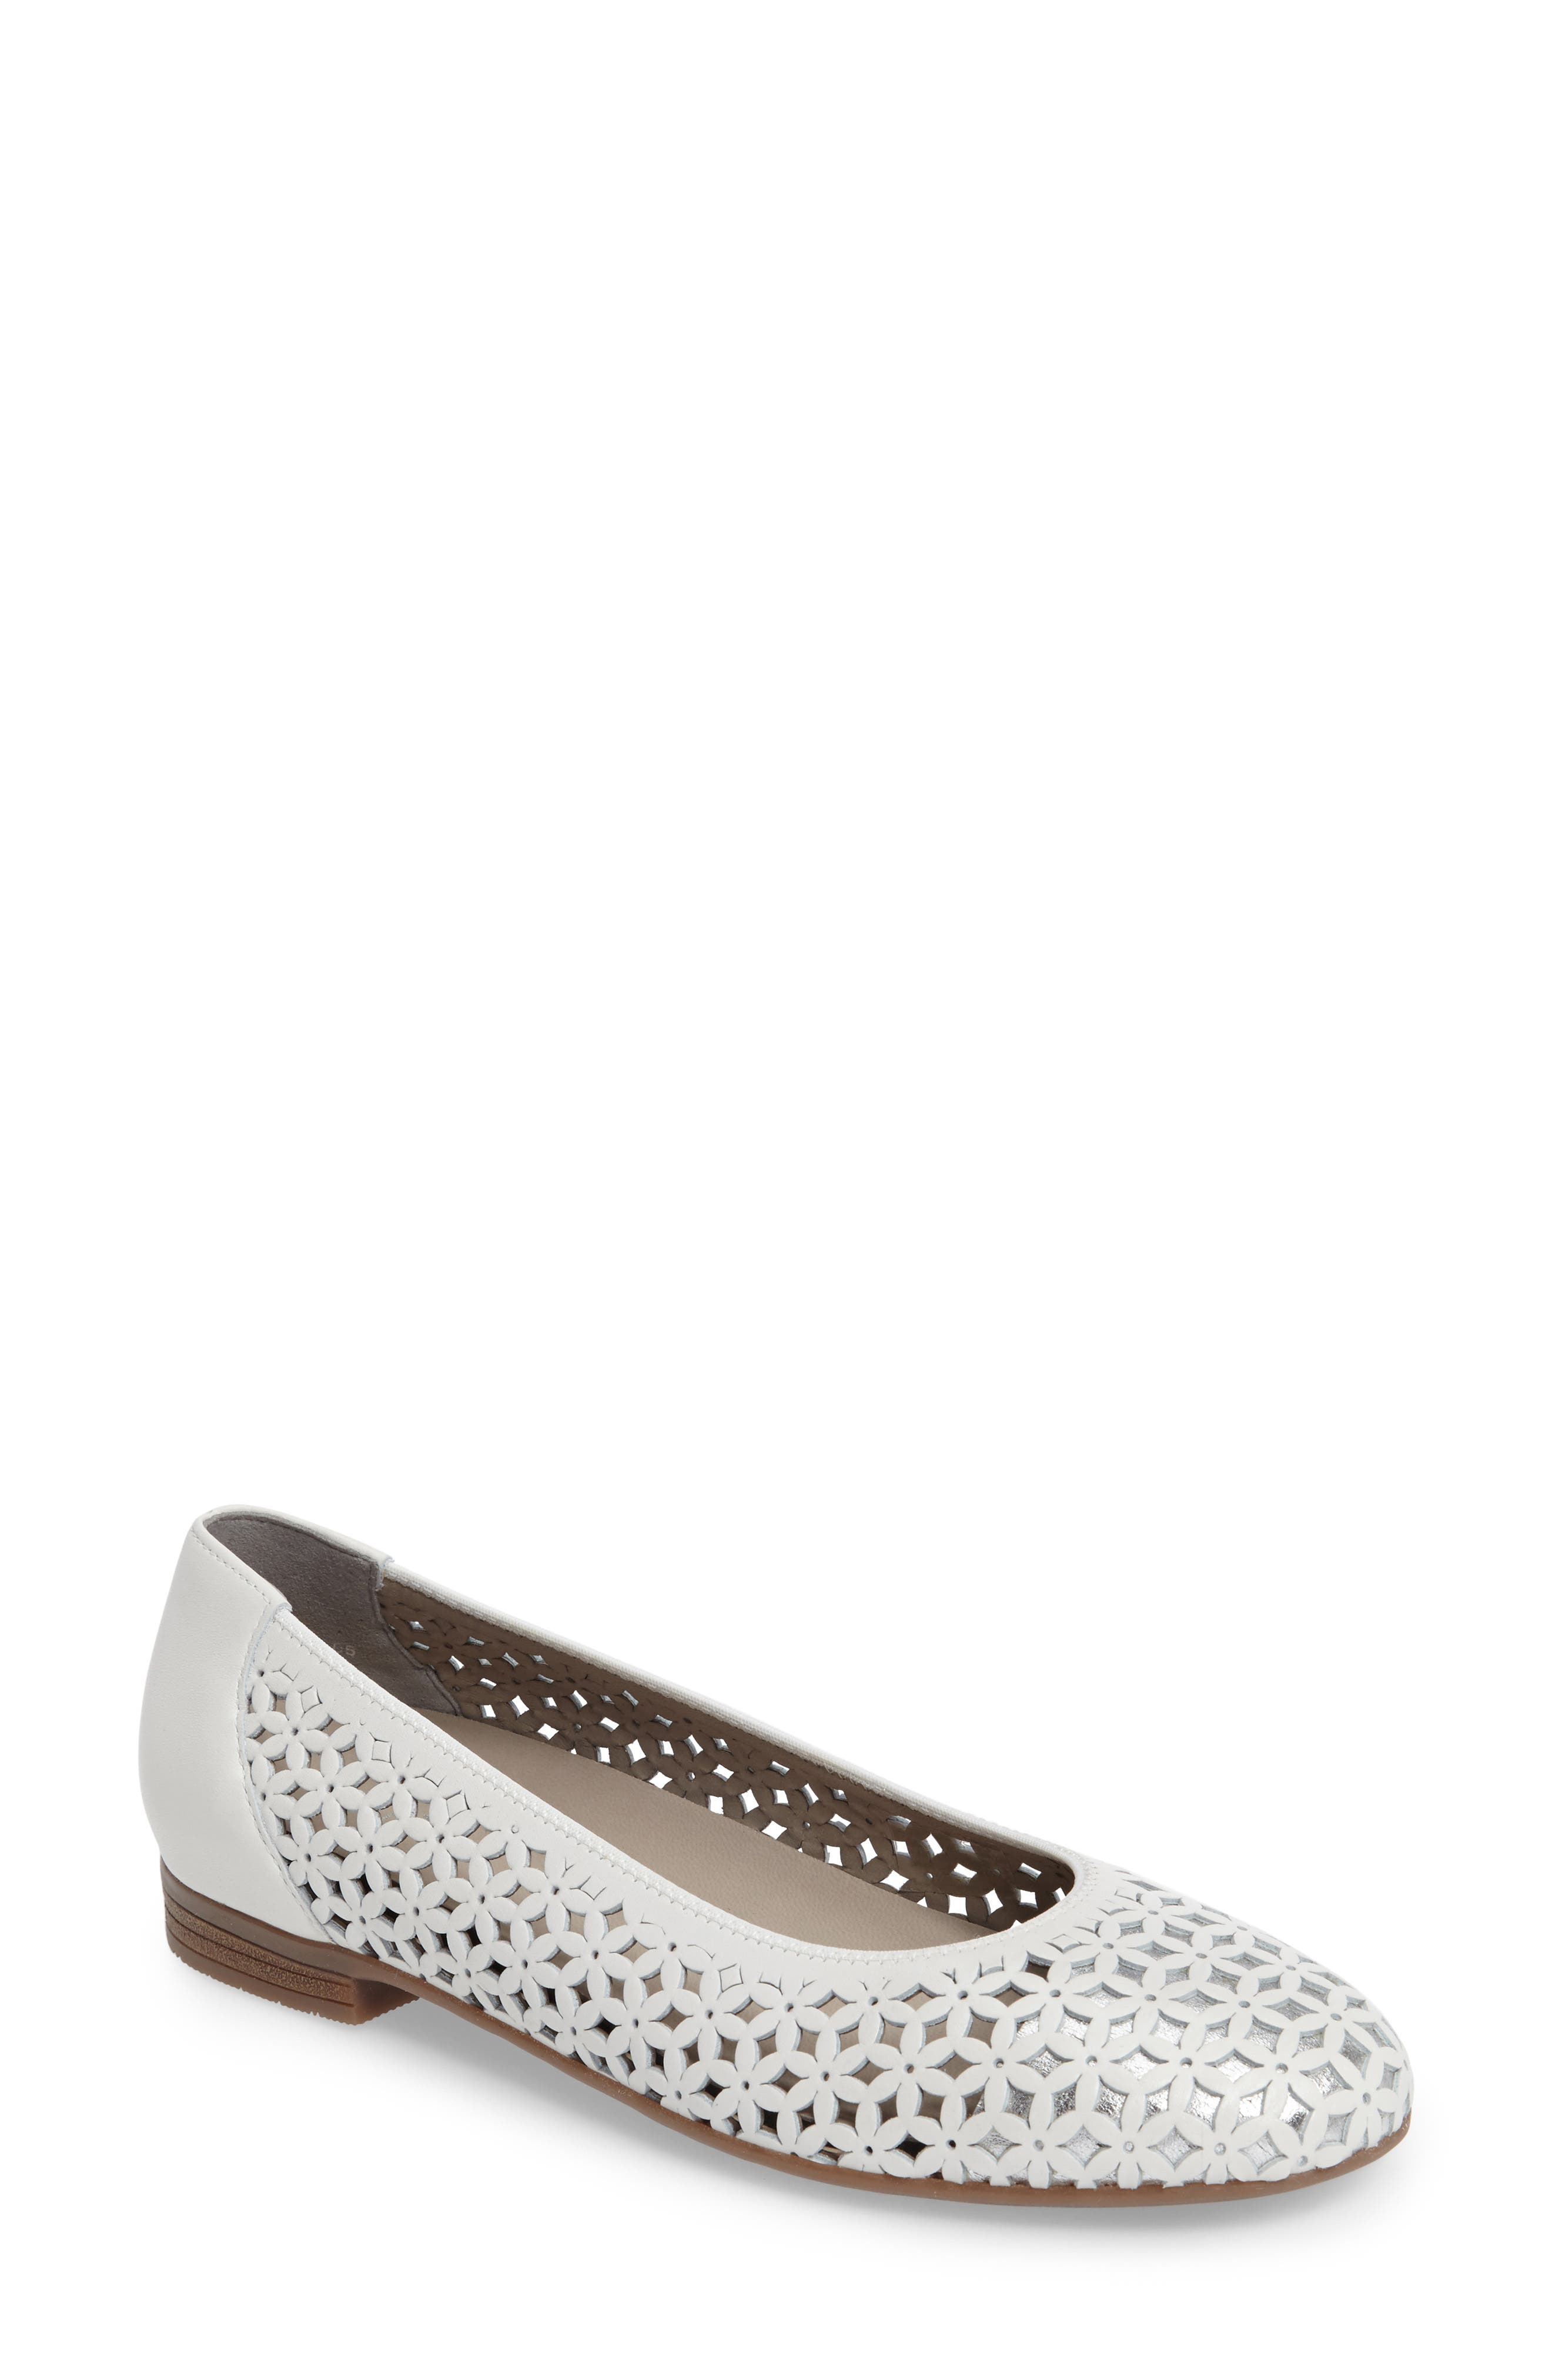 Stephanie Perforated Ballet Flat,                         Main,                         color, White Leather